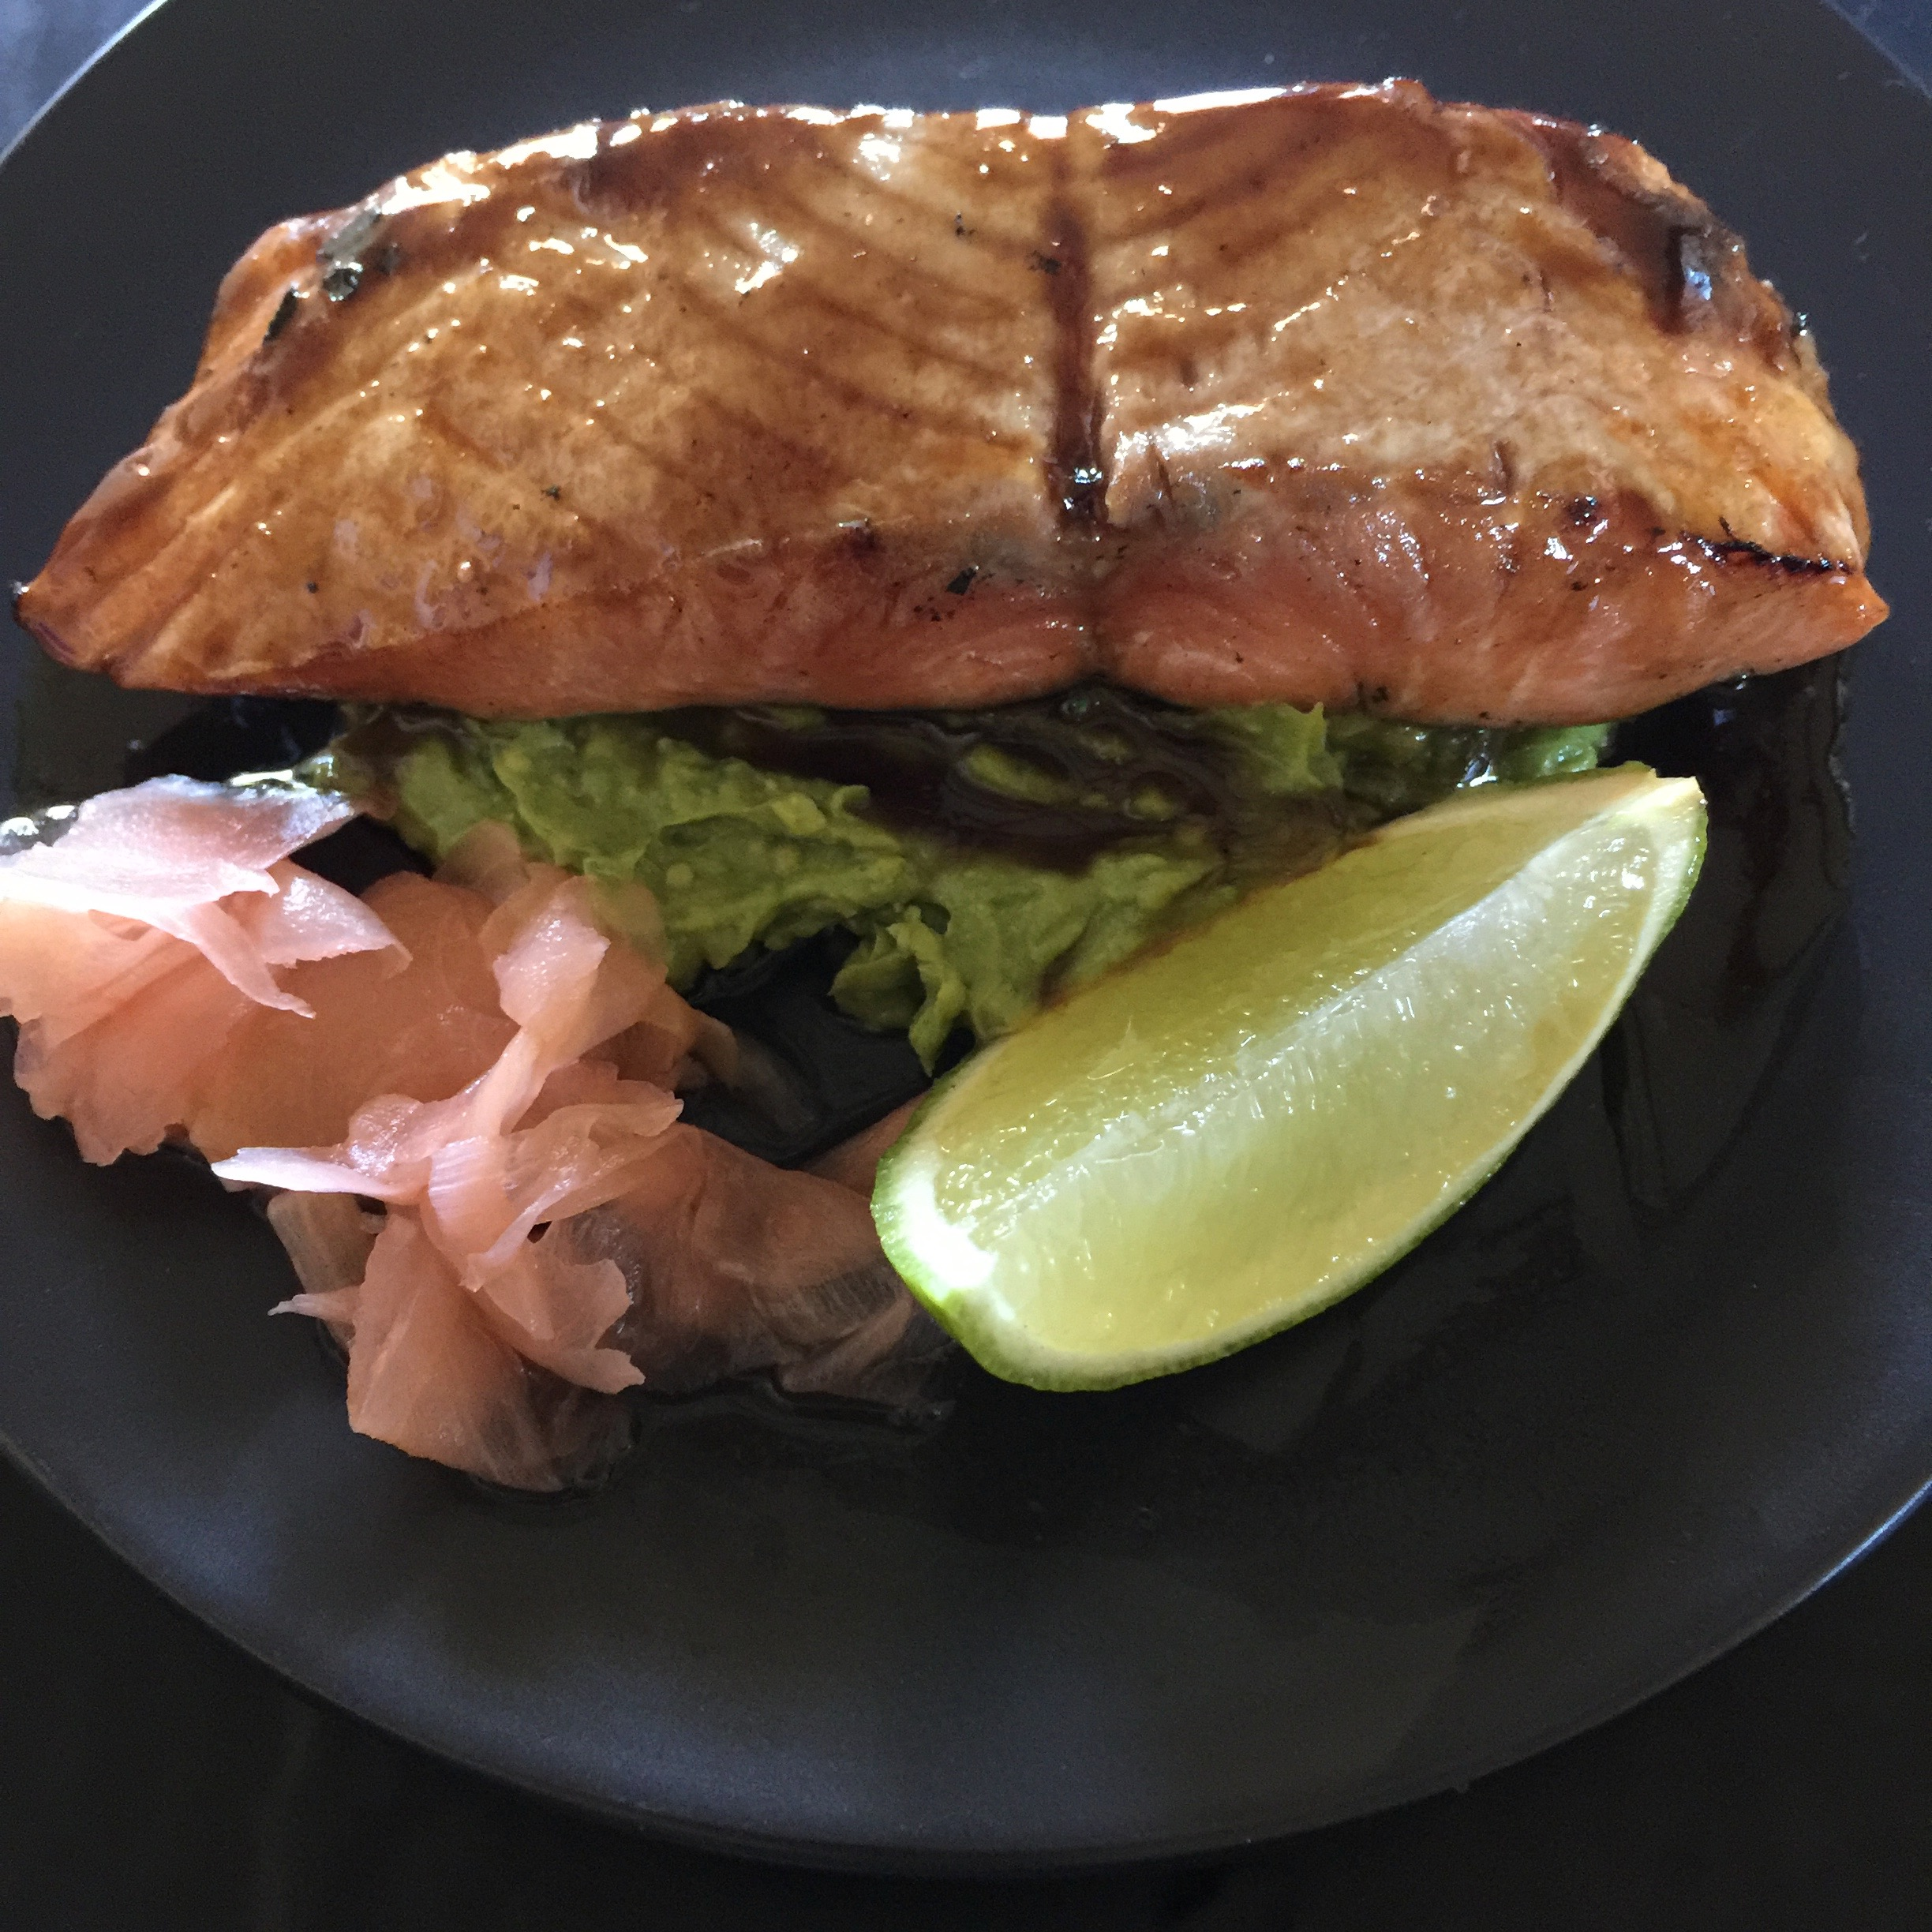 A fillet of smoked salmon dressed in a delicious teriyaki sauce served with smashed wasabi avocado, pickled ginger with a wedge of lime on a black plate by cooking meals for one